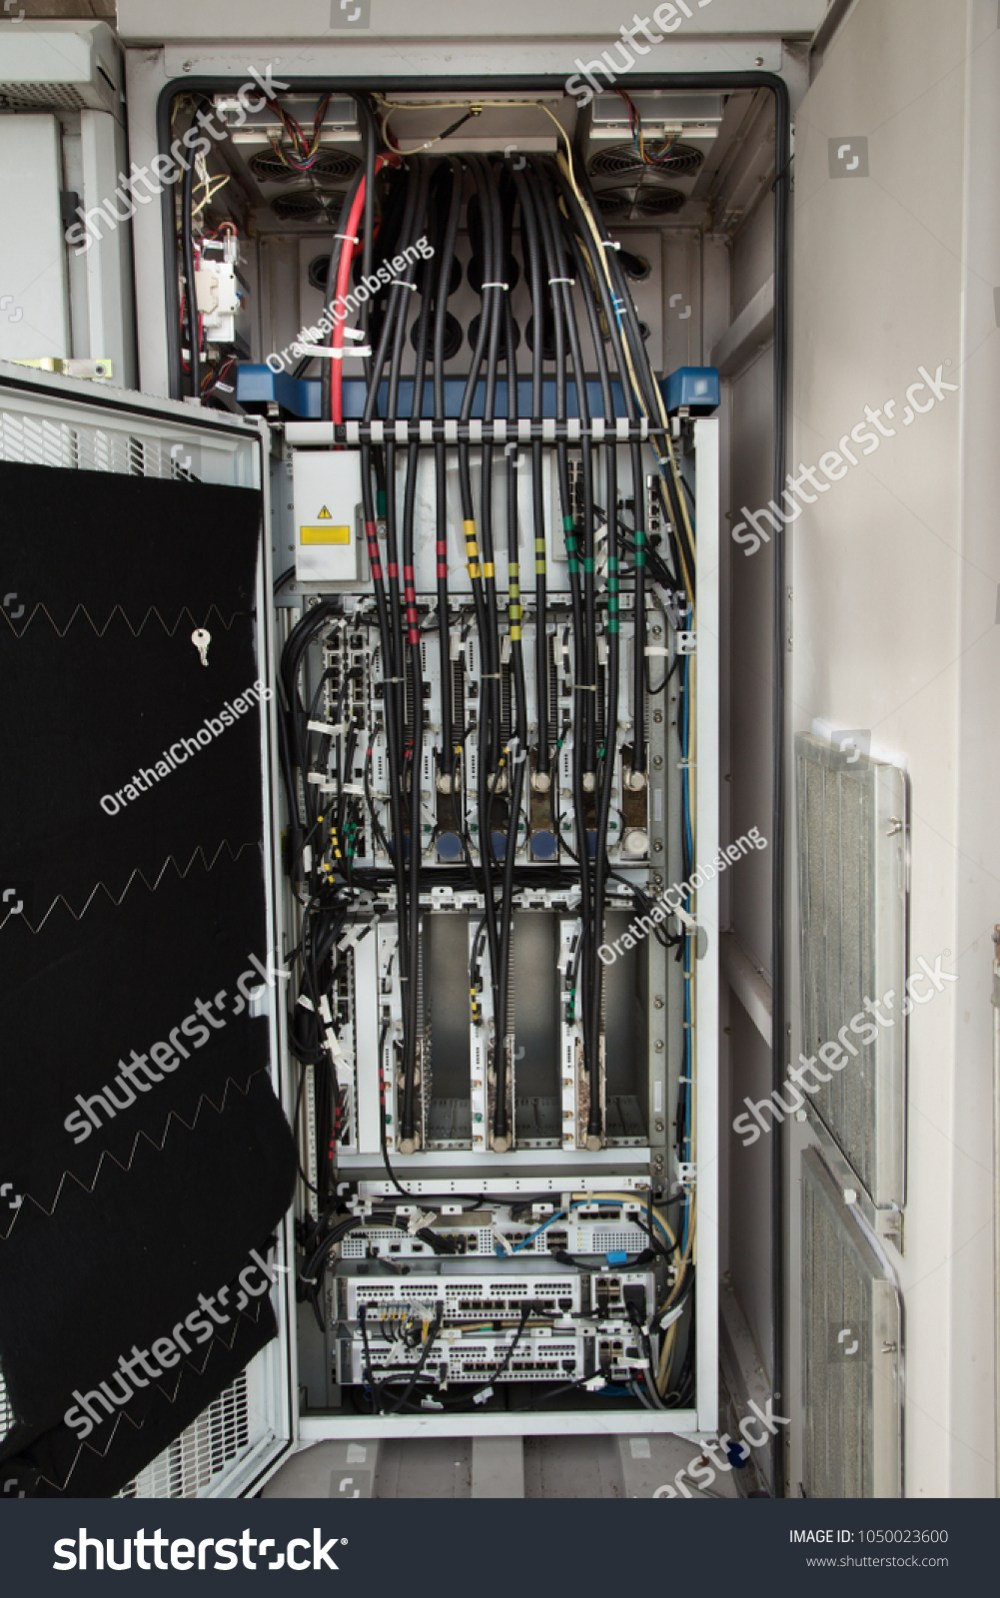 medium resolution of outdoor cabinet wiring diagram for servers and switches are located in the server room of the